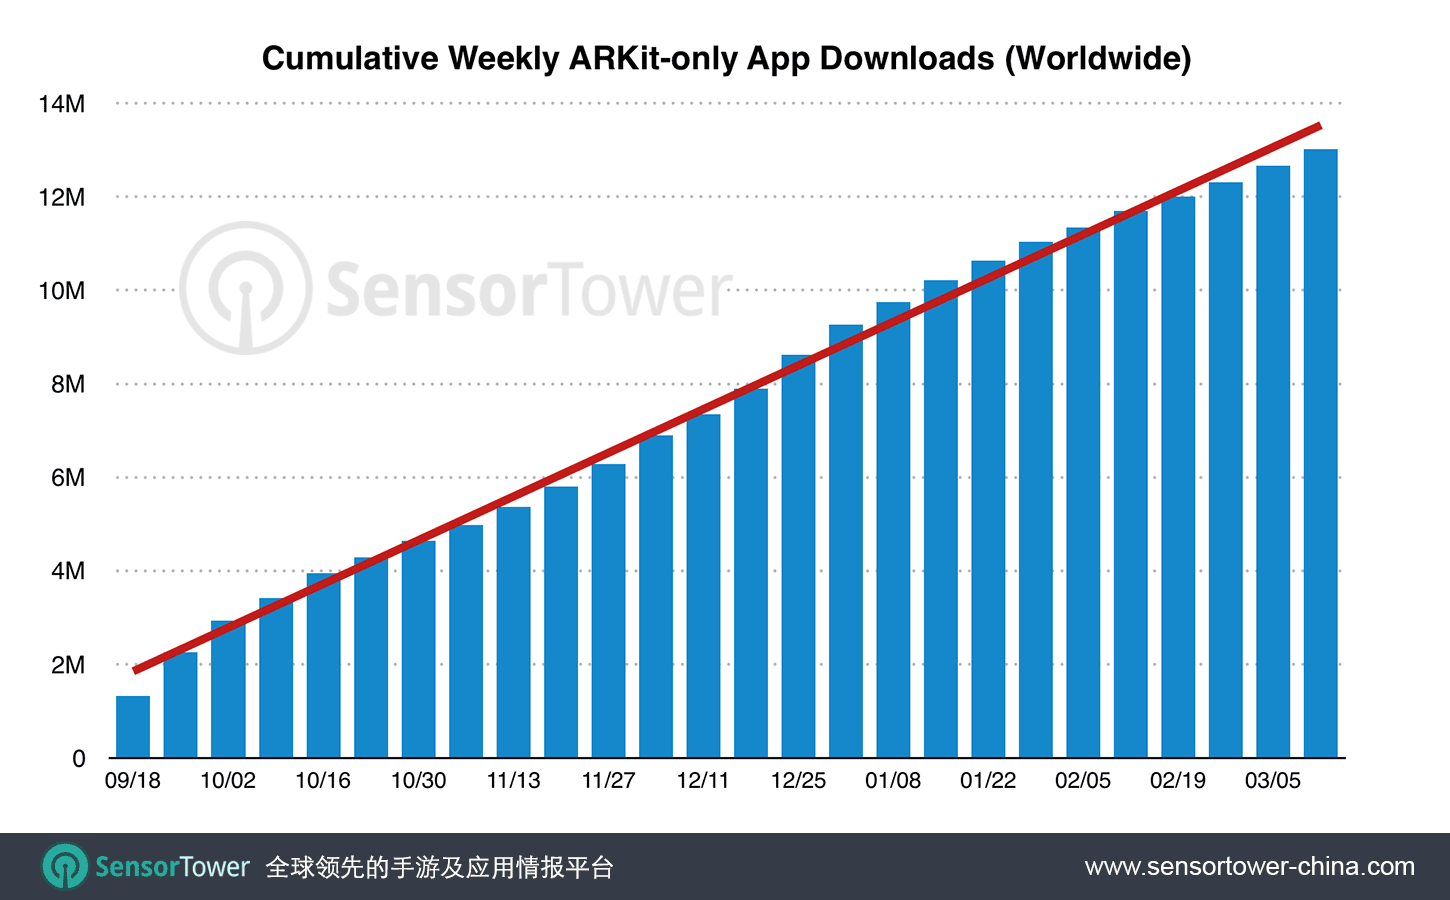 Chart showing downloads of ARKit-only apps worldwide since September 2017 CN  - arkit six months downloads cn - 亮相半年后,全面基于ARKit技术而开发的App全球下载量超过1300万次,几乎一半来自游戏